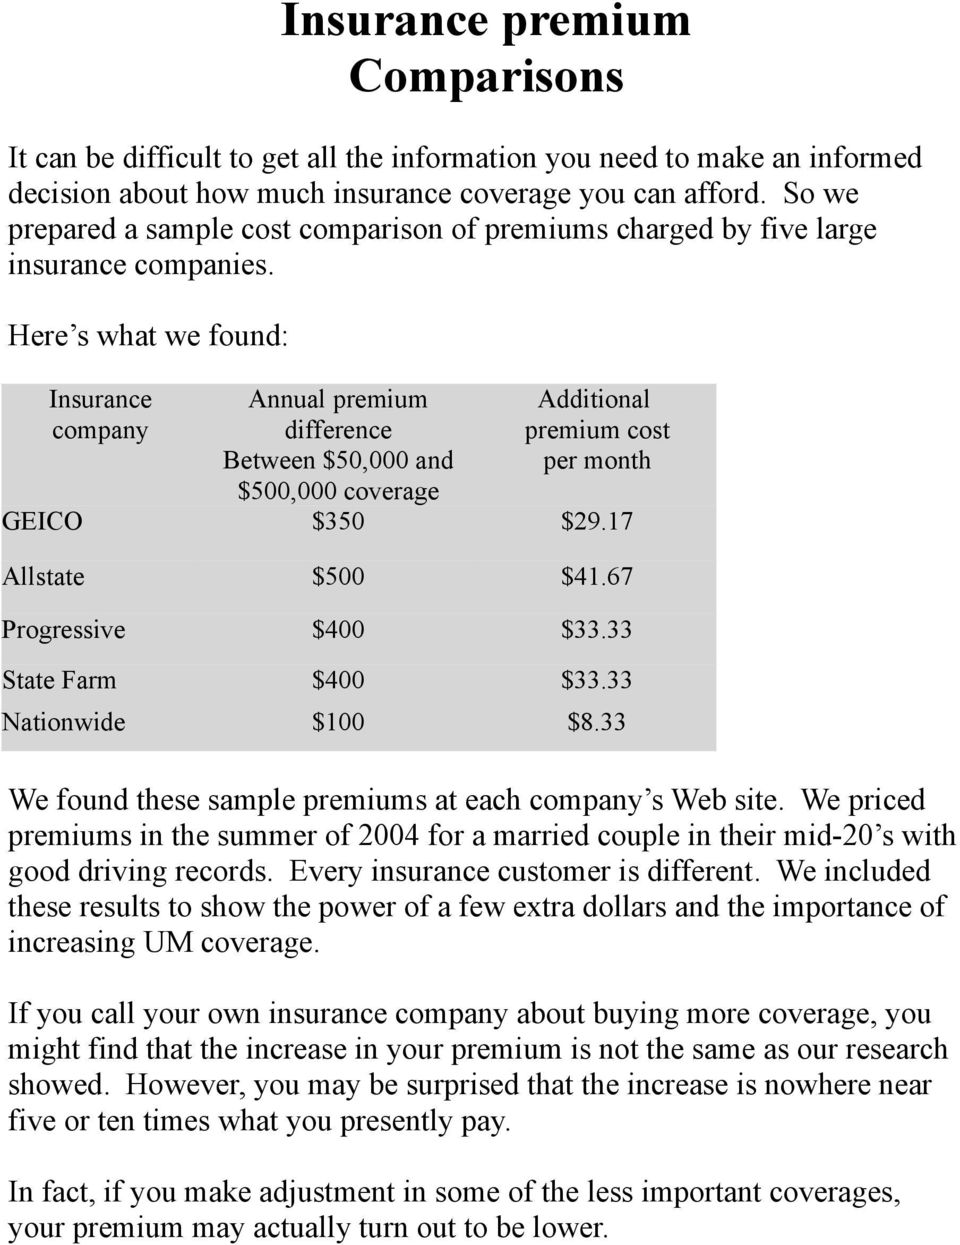 Here s what we found: Insurance company Annual premium difference Between $50,000 and $500,000 coverage Additional premium cost per month GEICO $350 $29.17 Allstate $500 $41.67 Progressive $400 $33.